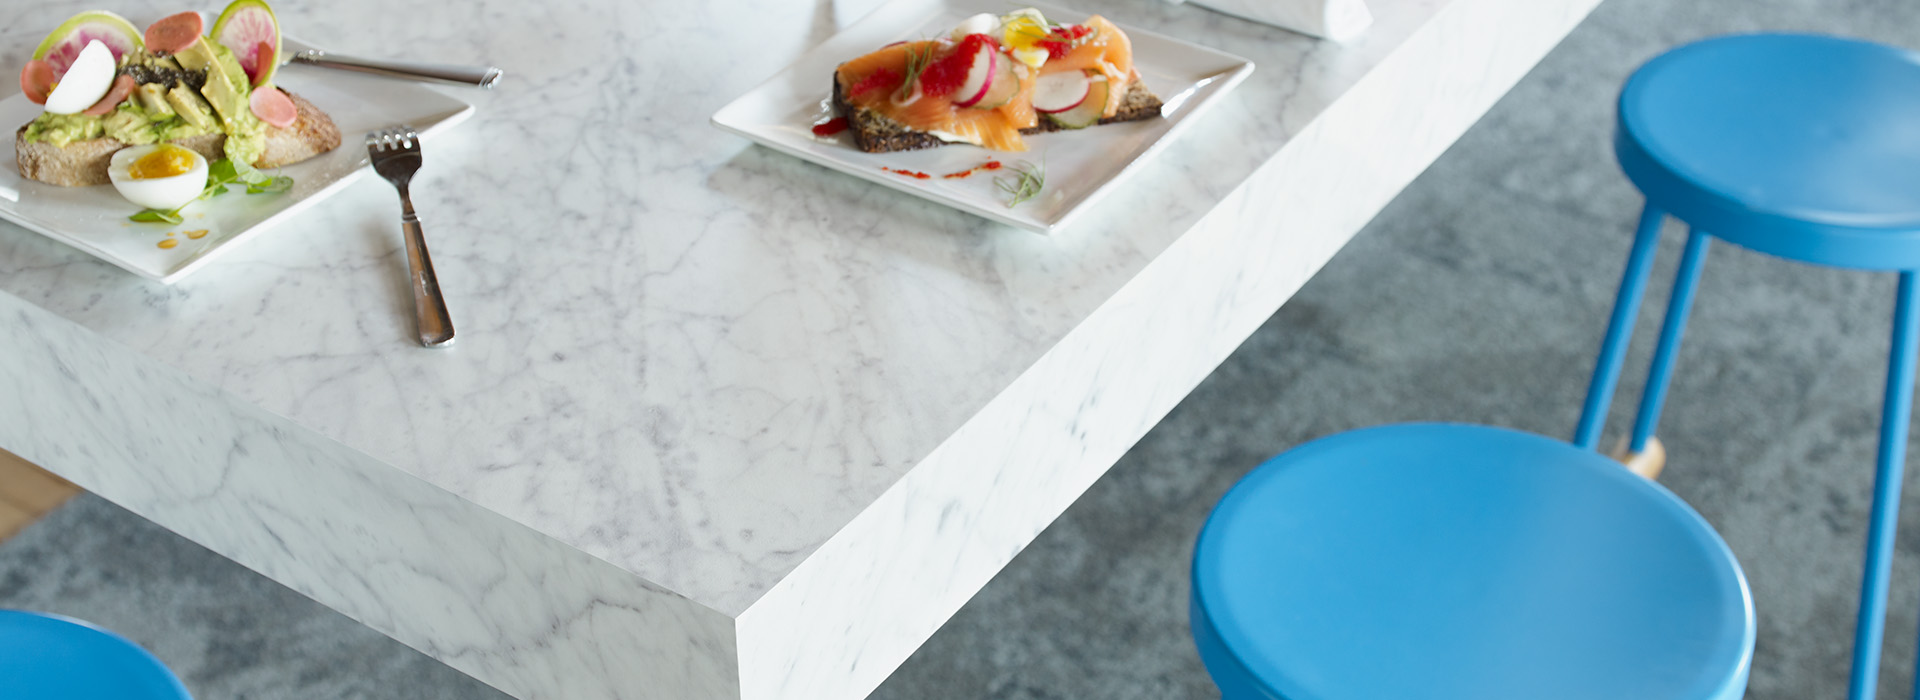 Table top with food 6696 Carrara Bianco ColorCore2